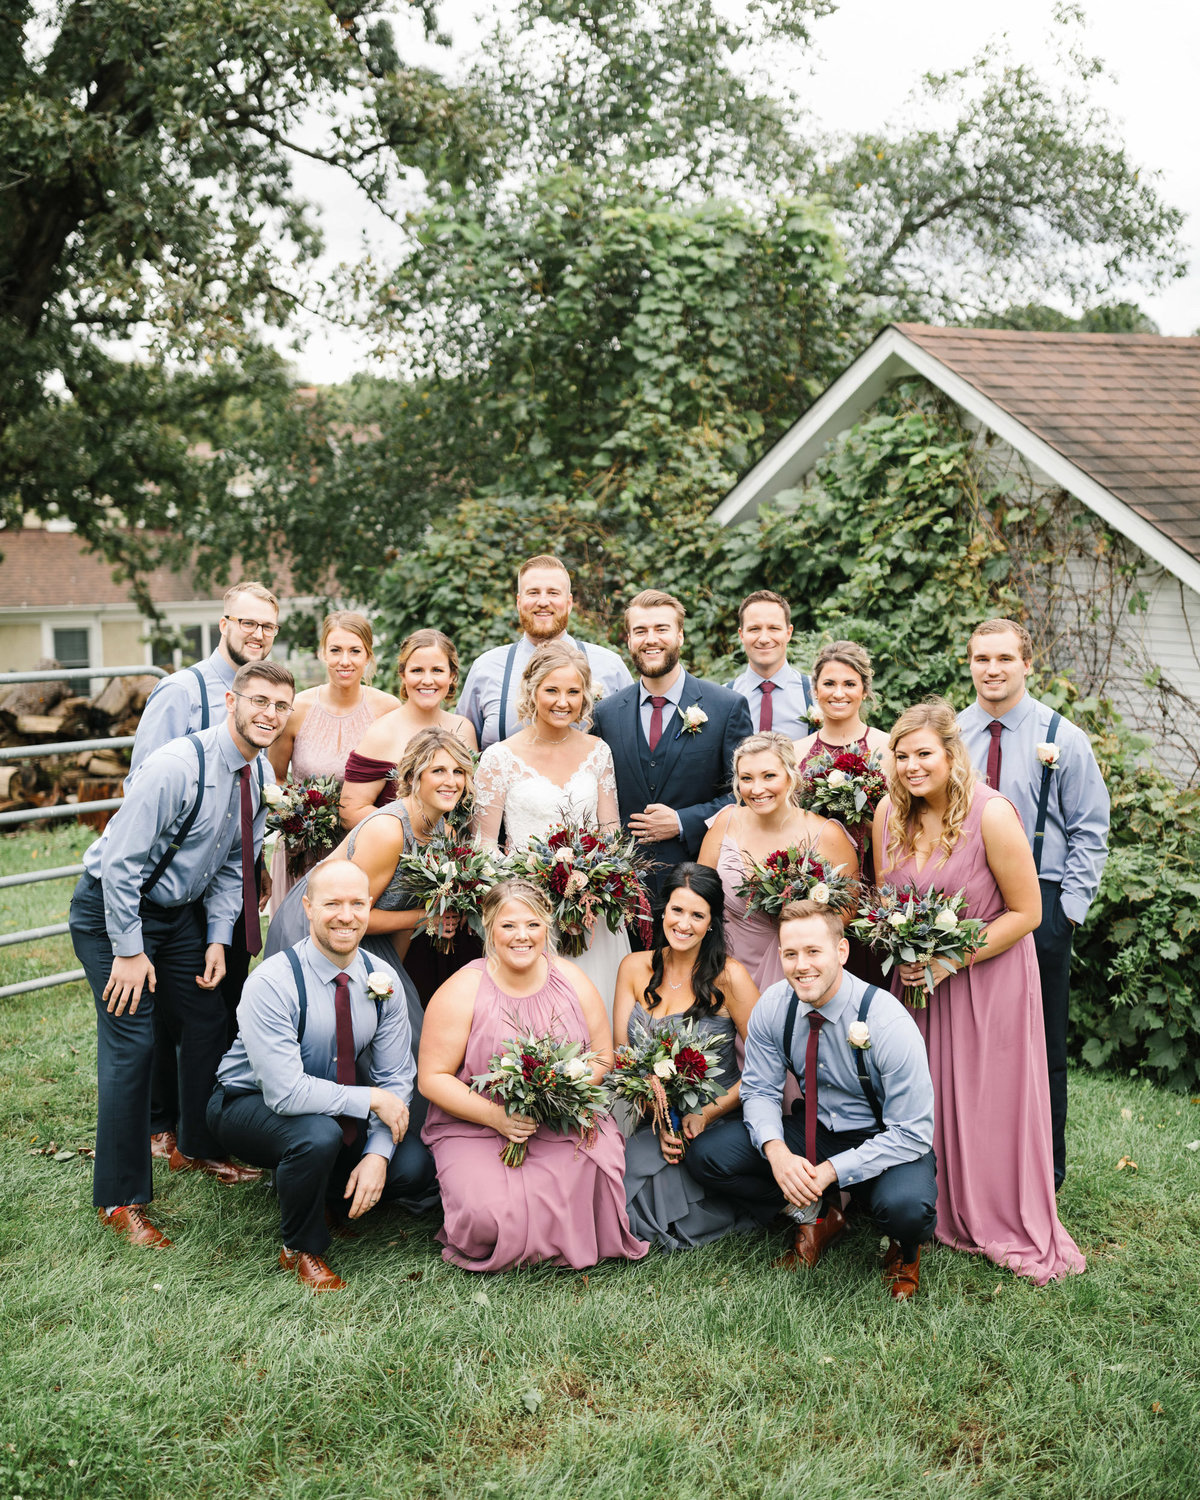 Hope-Glen-Farm-Cottage-Grove-Minnesota-September-Fall-Wedding-31